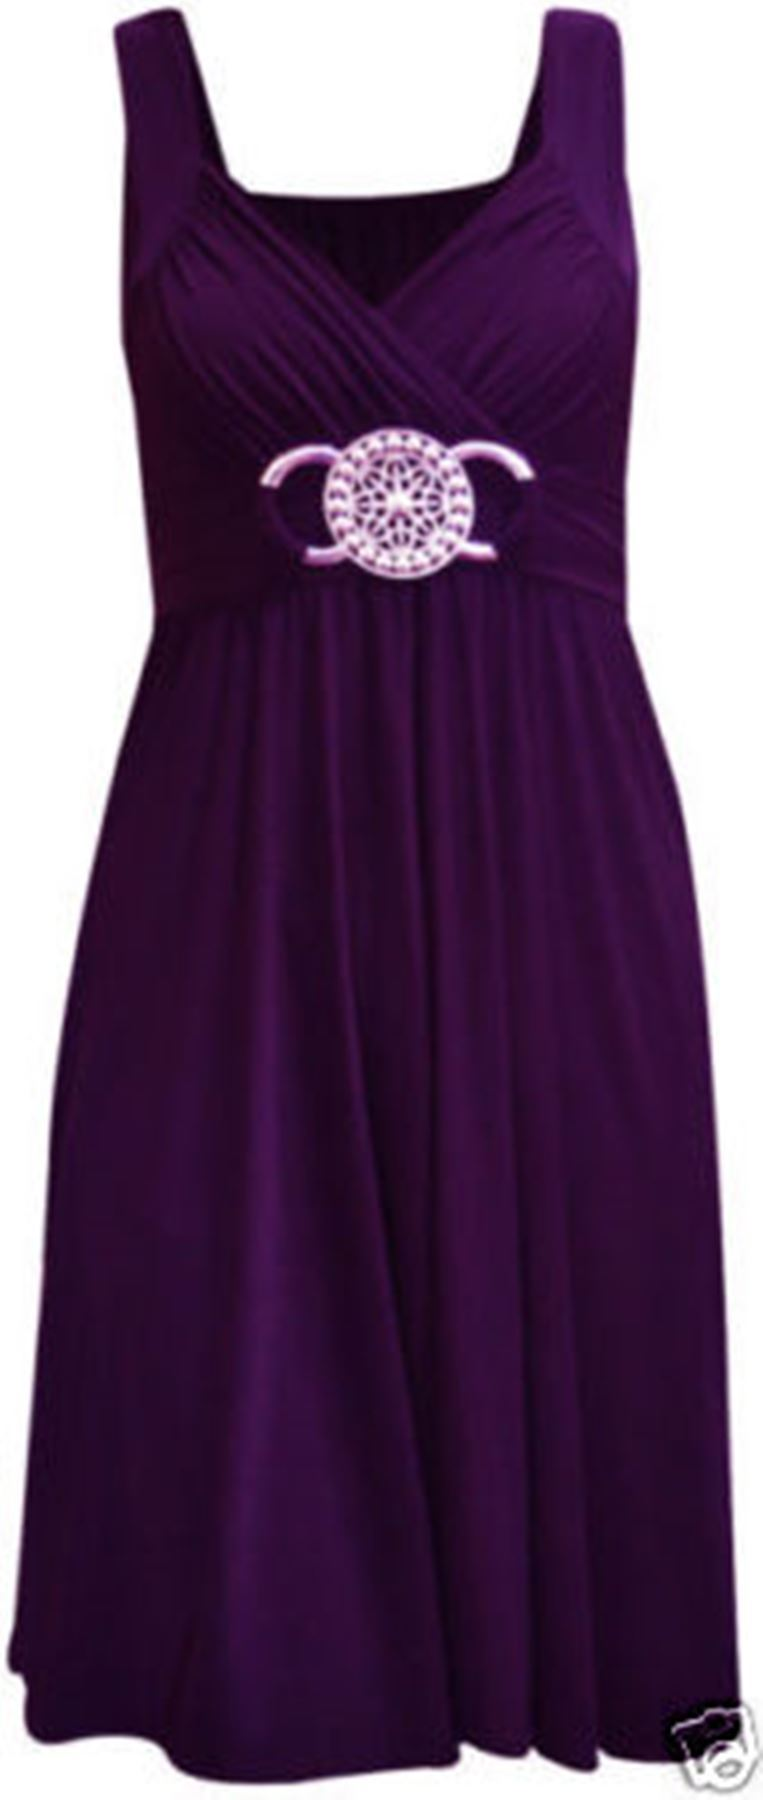 New-Ladies-Womens-Short-Buckle-Evening-Midi-Bridesmaid-Dress-Plus-Size-8-26